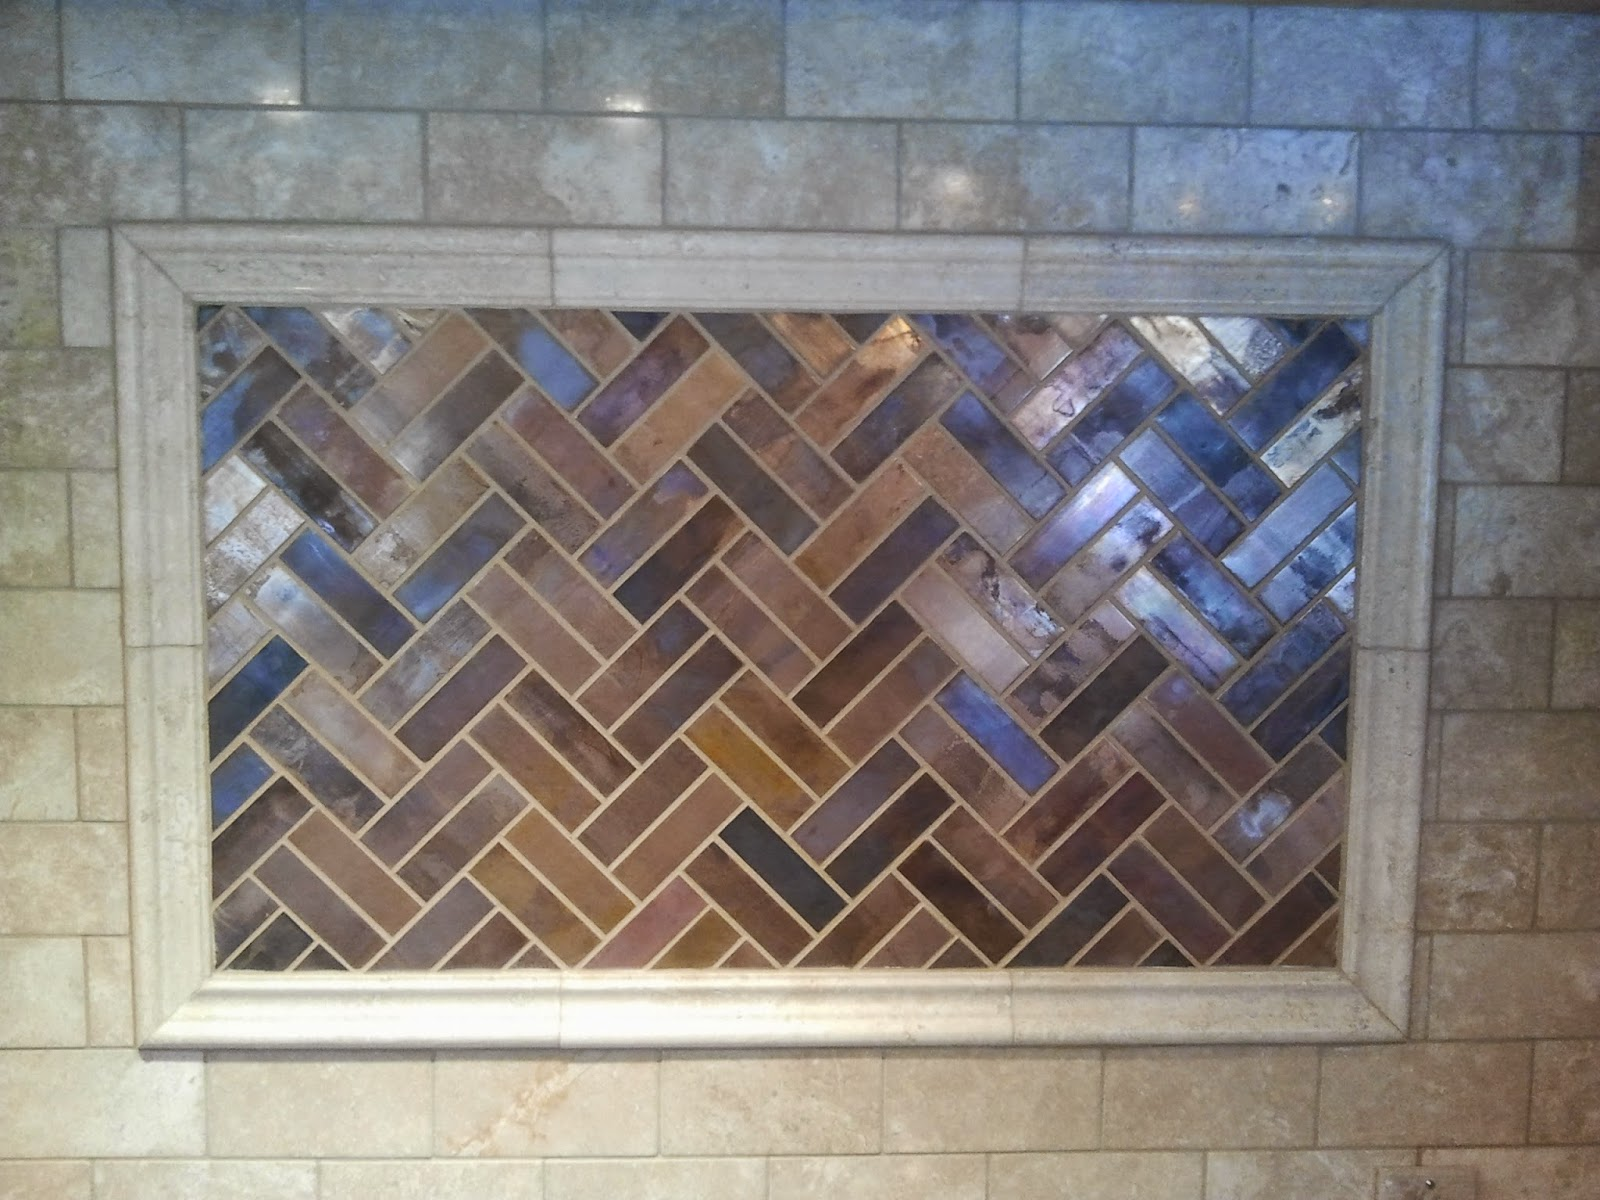 Cool Tile Patterns….. | The Tile Shop: Design by Kirsty